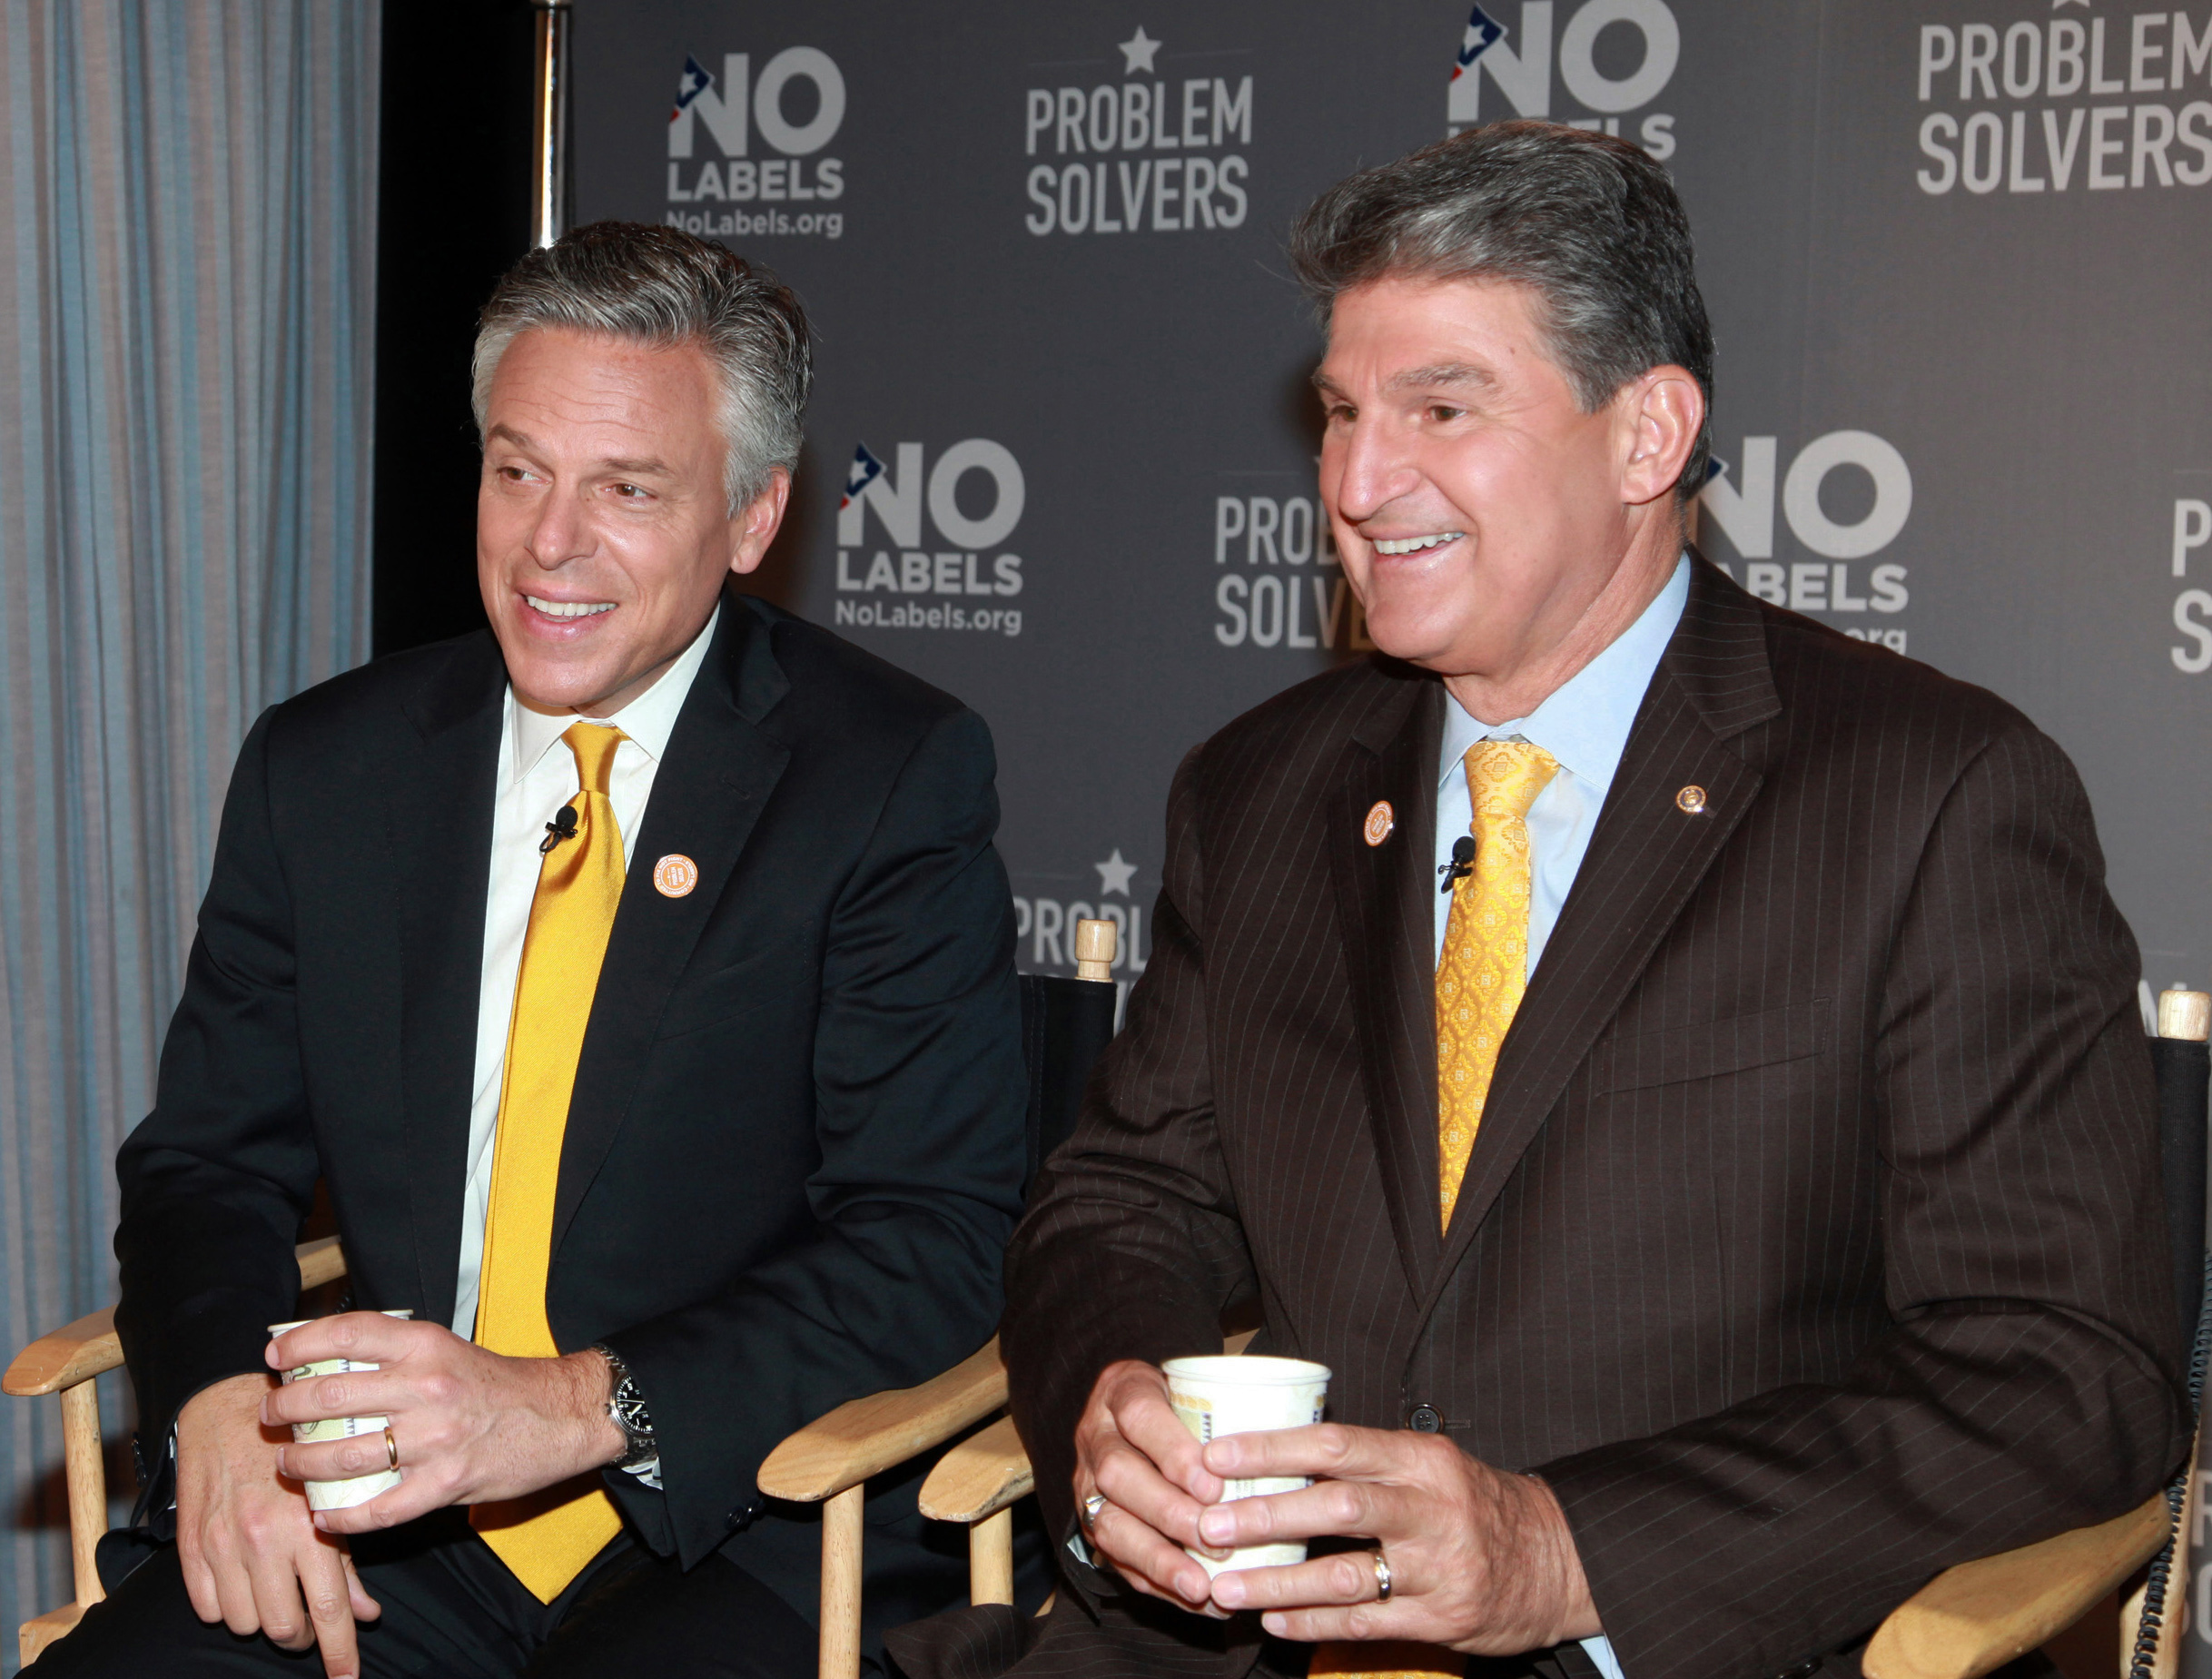 In this photo provided by No Labels, Former Ambassador to China and former Utah Gov. Jon Huntsman, left, and Sen. Joe Manchin, (D-W.Va.), address reporters after the pair became the new leaders of No Labels in New York, Monday, Jan. 14, 2013.